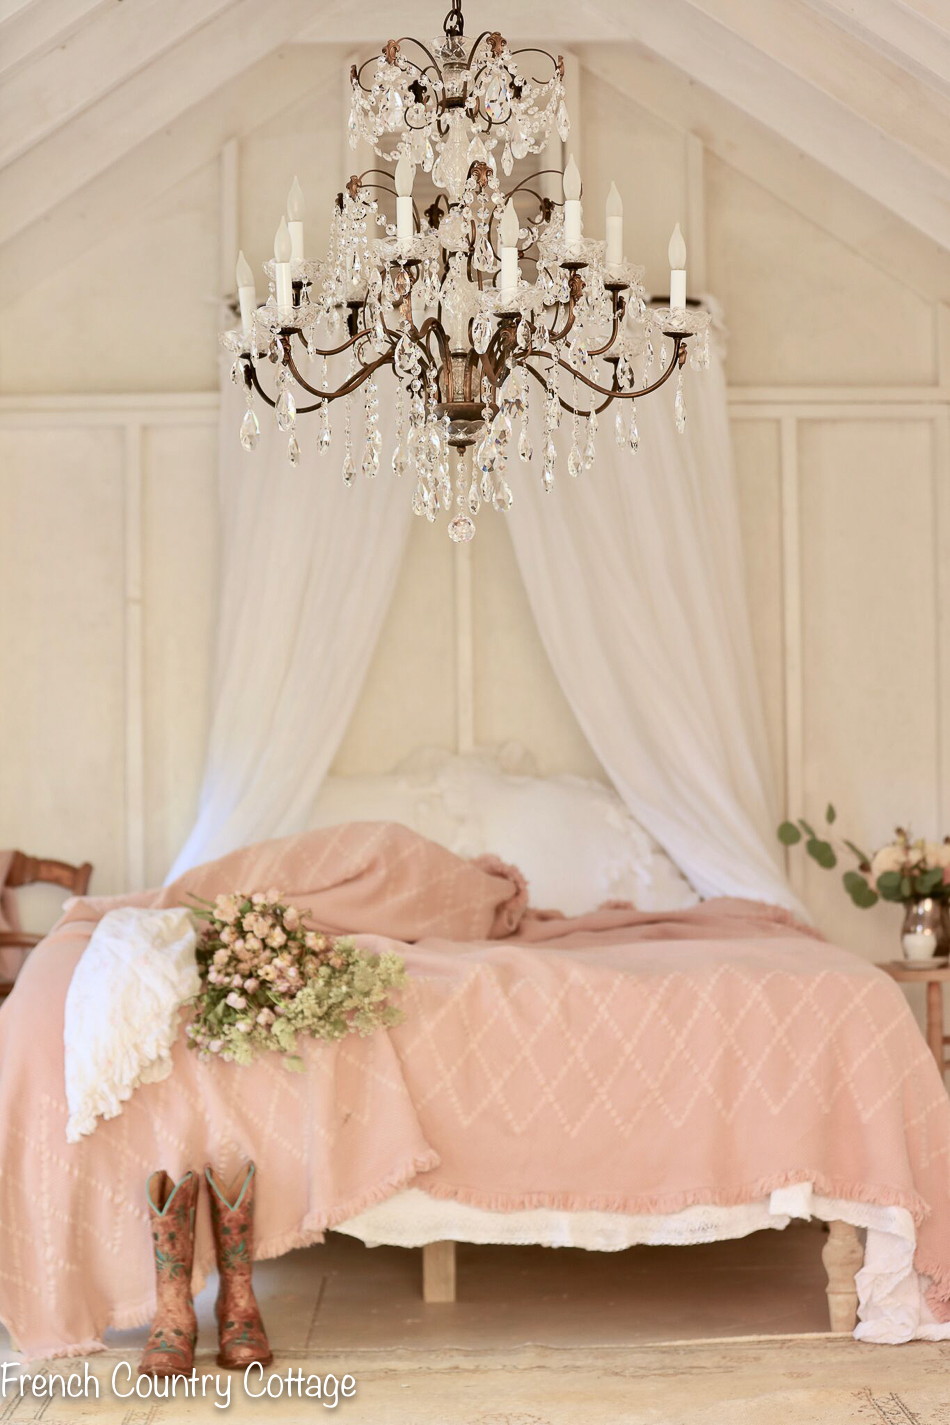 A romantic inspired bedroom - FRENCH COUNTRY COTTAGE